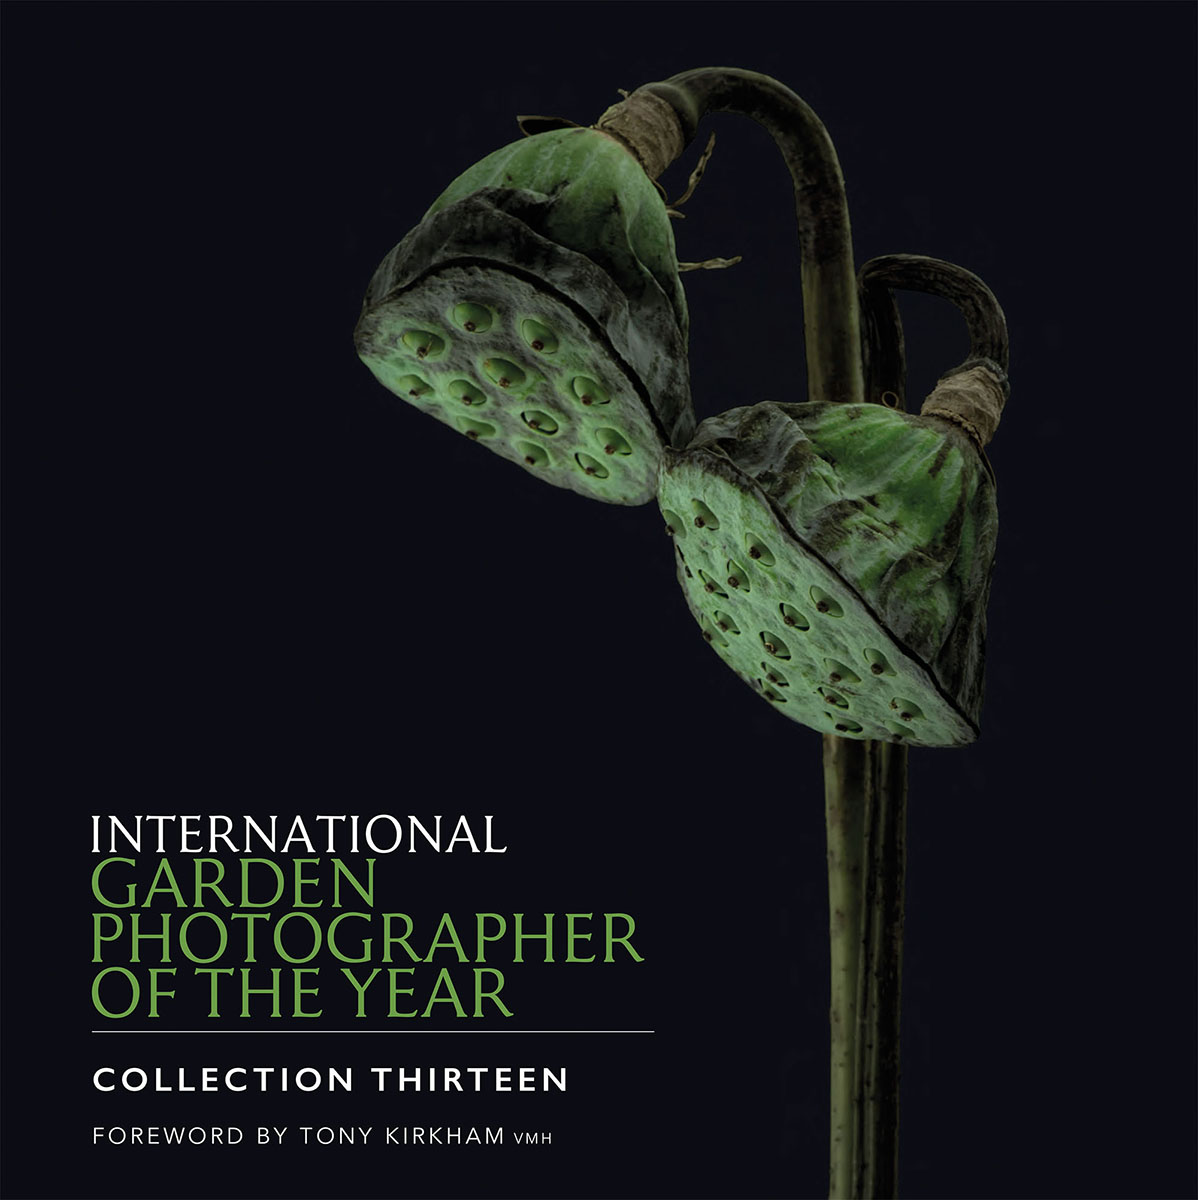 International Garden Photographer of the Year - Collection 13